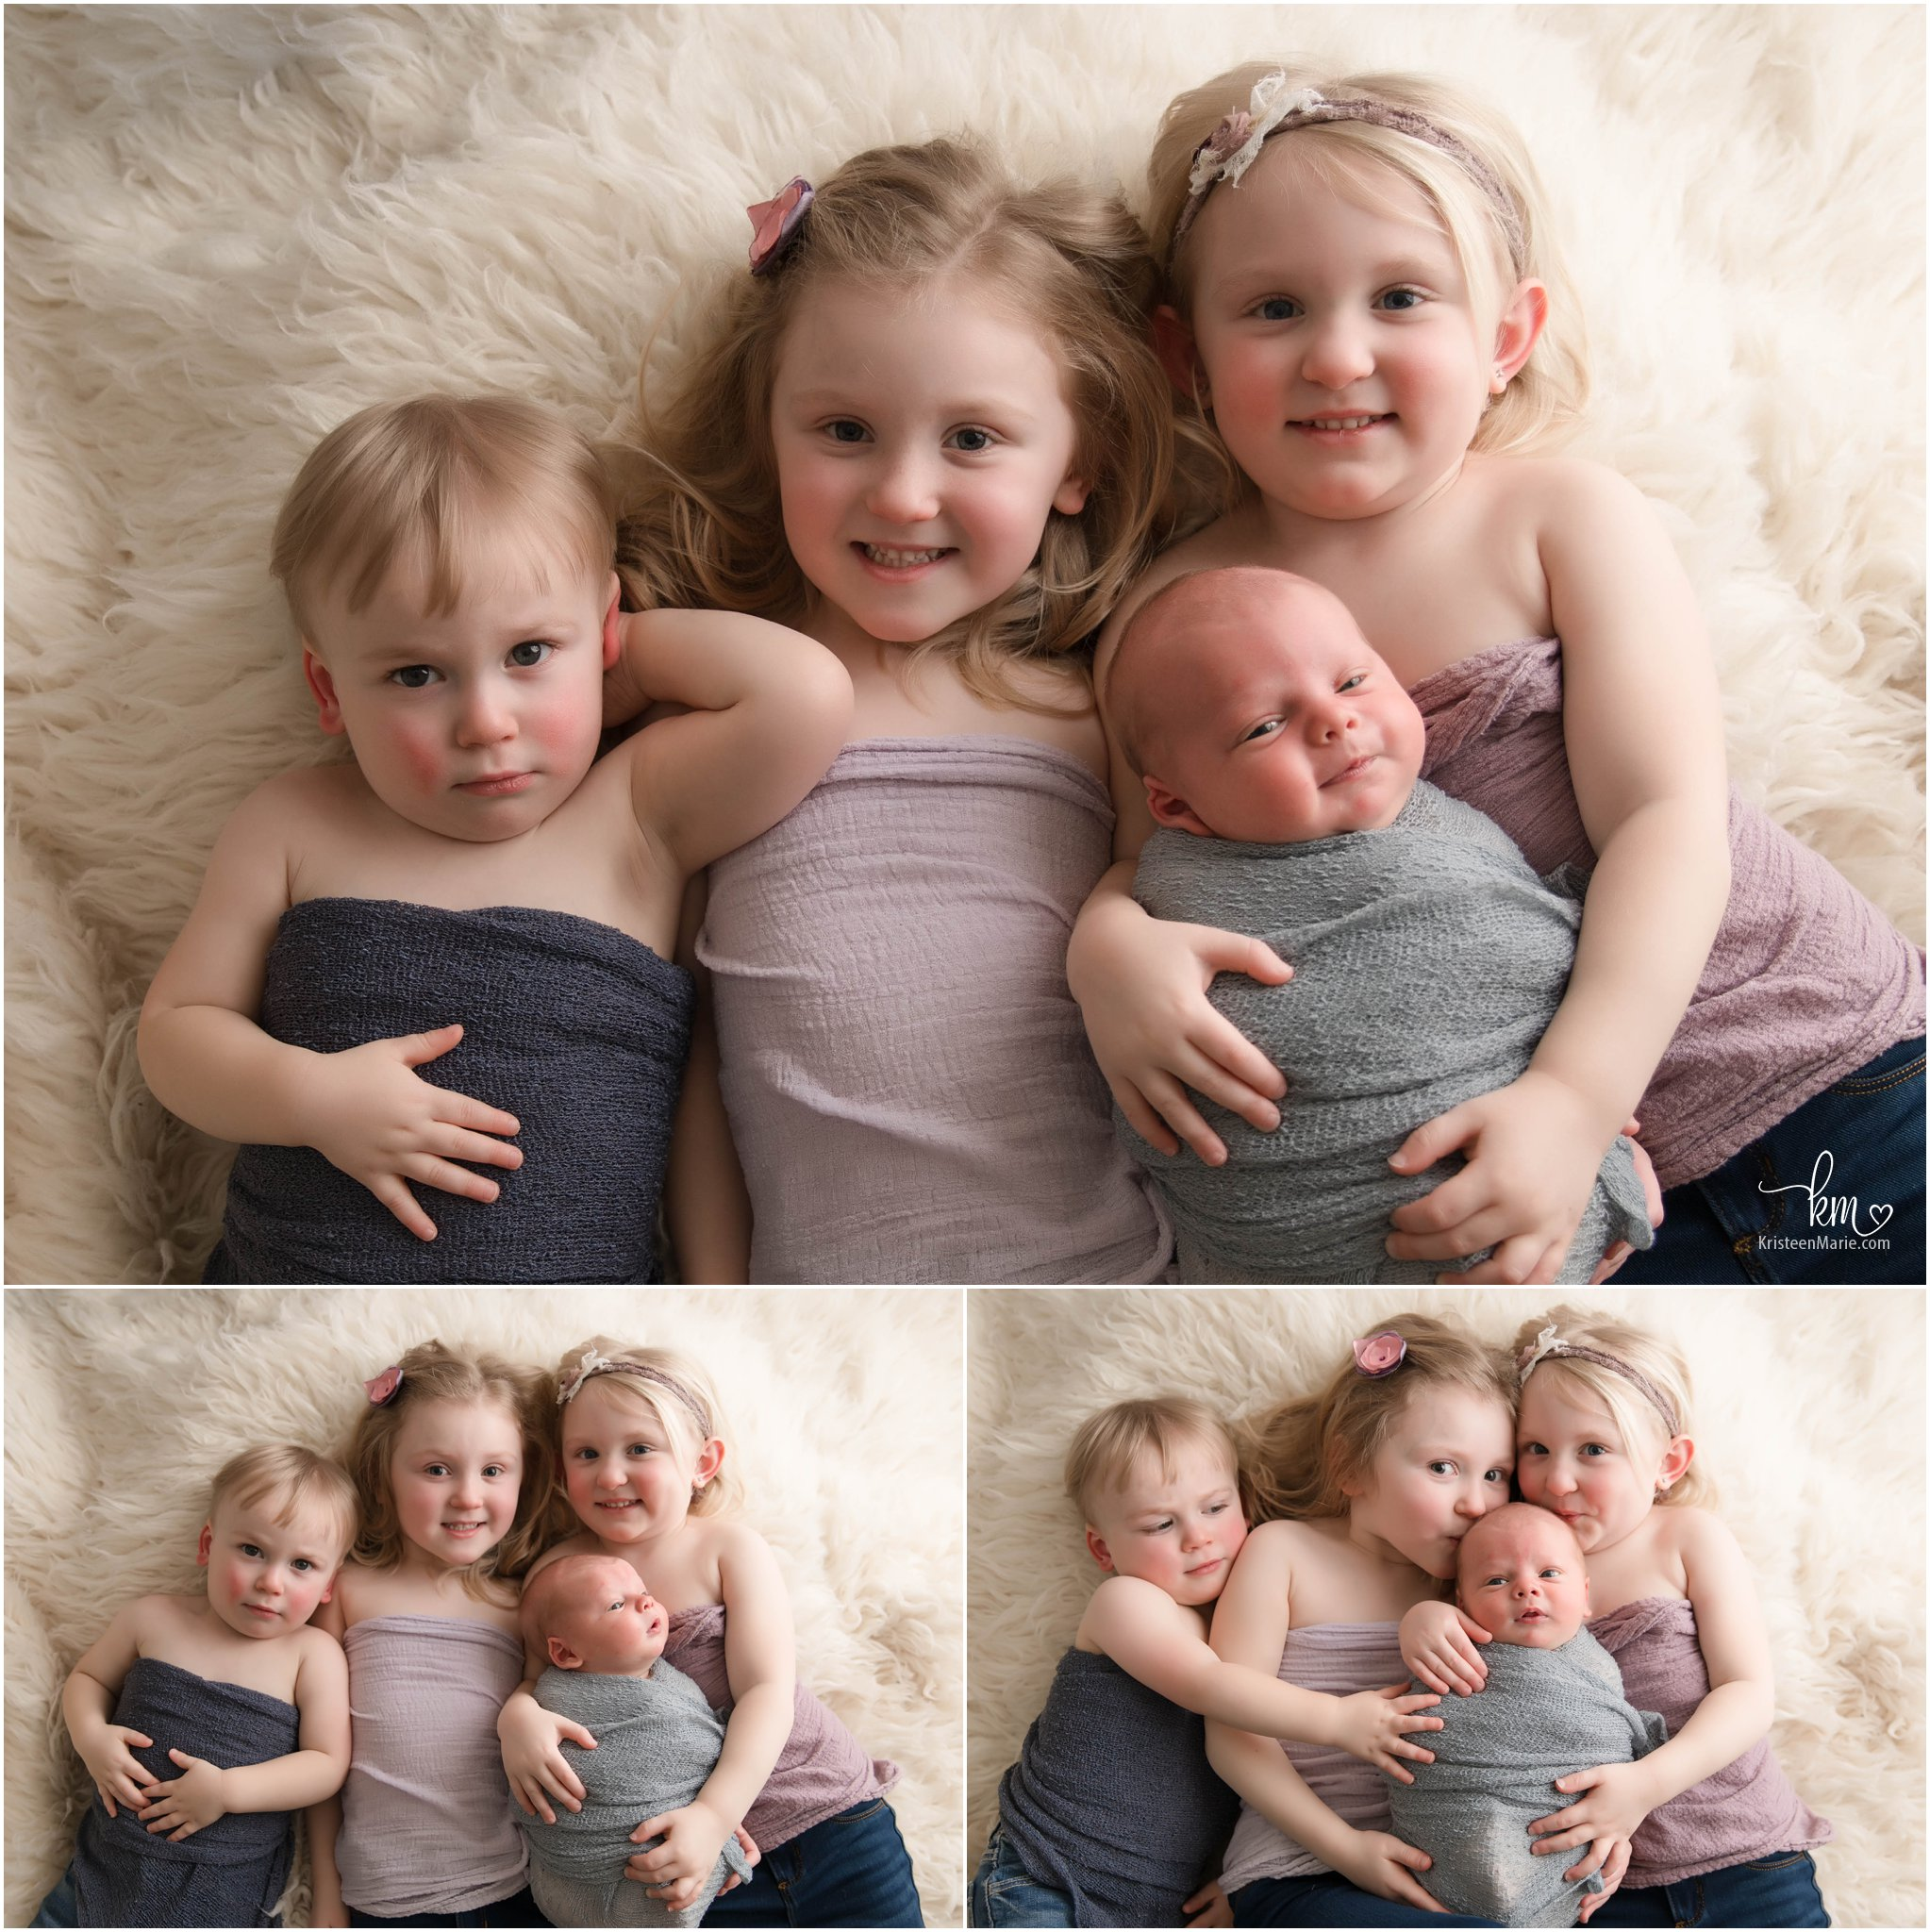 4 kids with newborn baby - 4 kids newborn photography